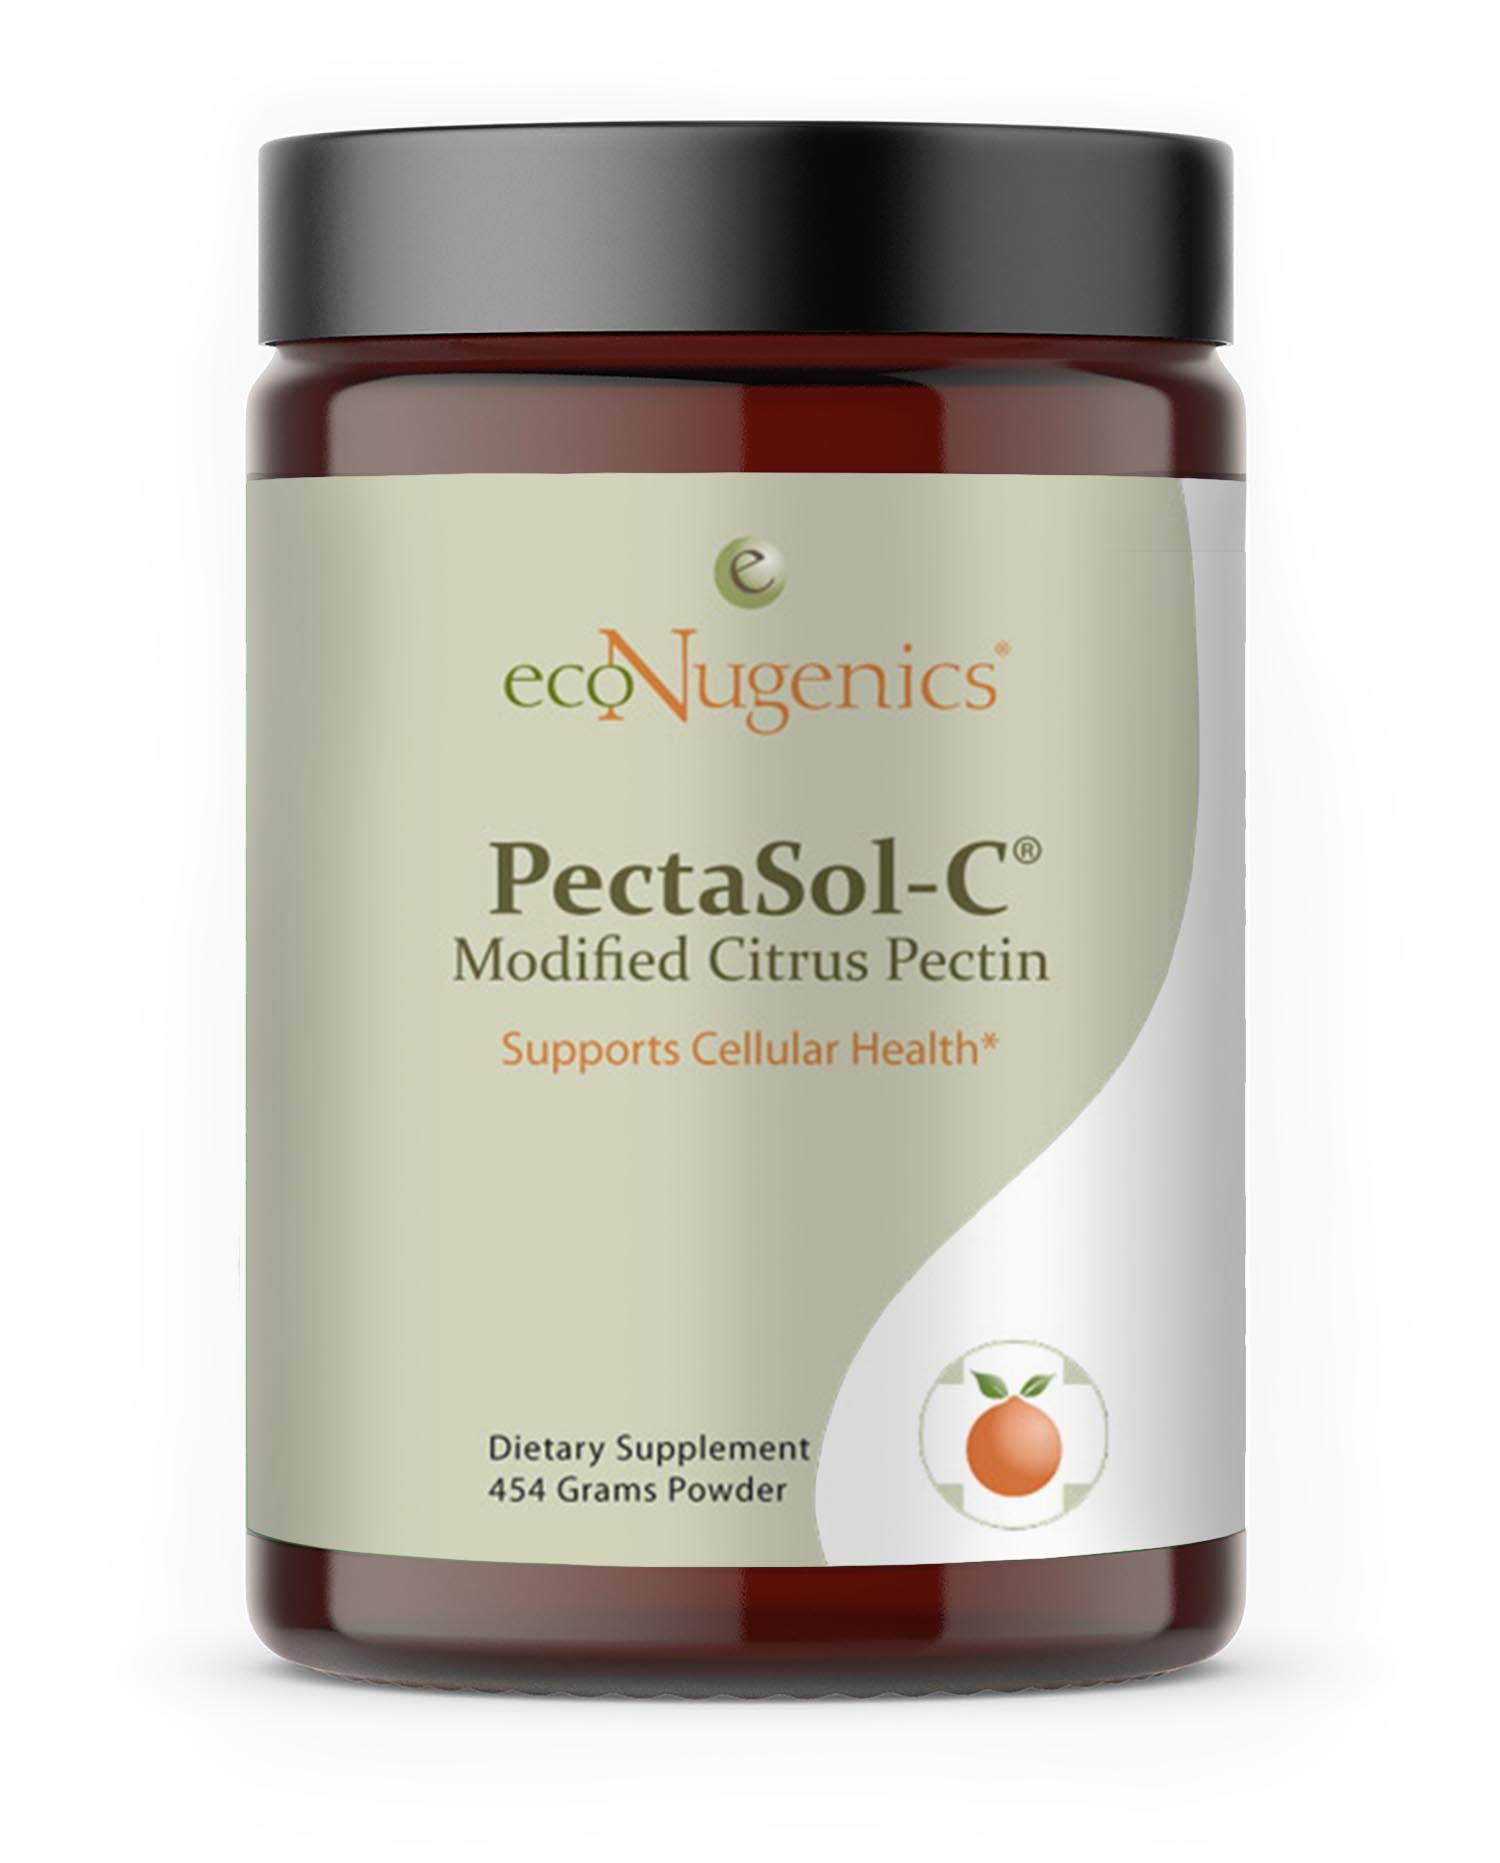 EcoNugenics - PectaSol-C Modified Citrus Pectin - 454 Grams | Professionally Formulated to Help Maintain Healthy Galectin-3 Levels | Supports Cellular & Immune System Health | Safe & Natural by EcoNugenics